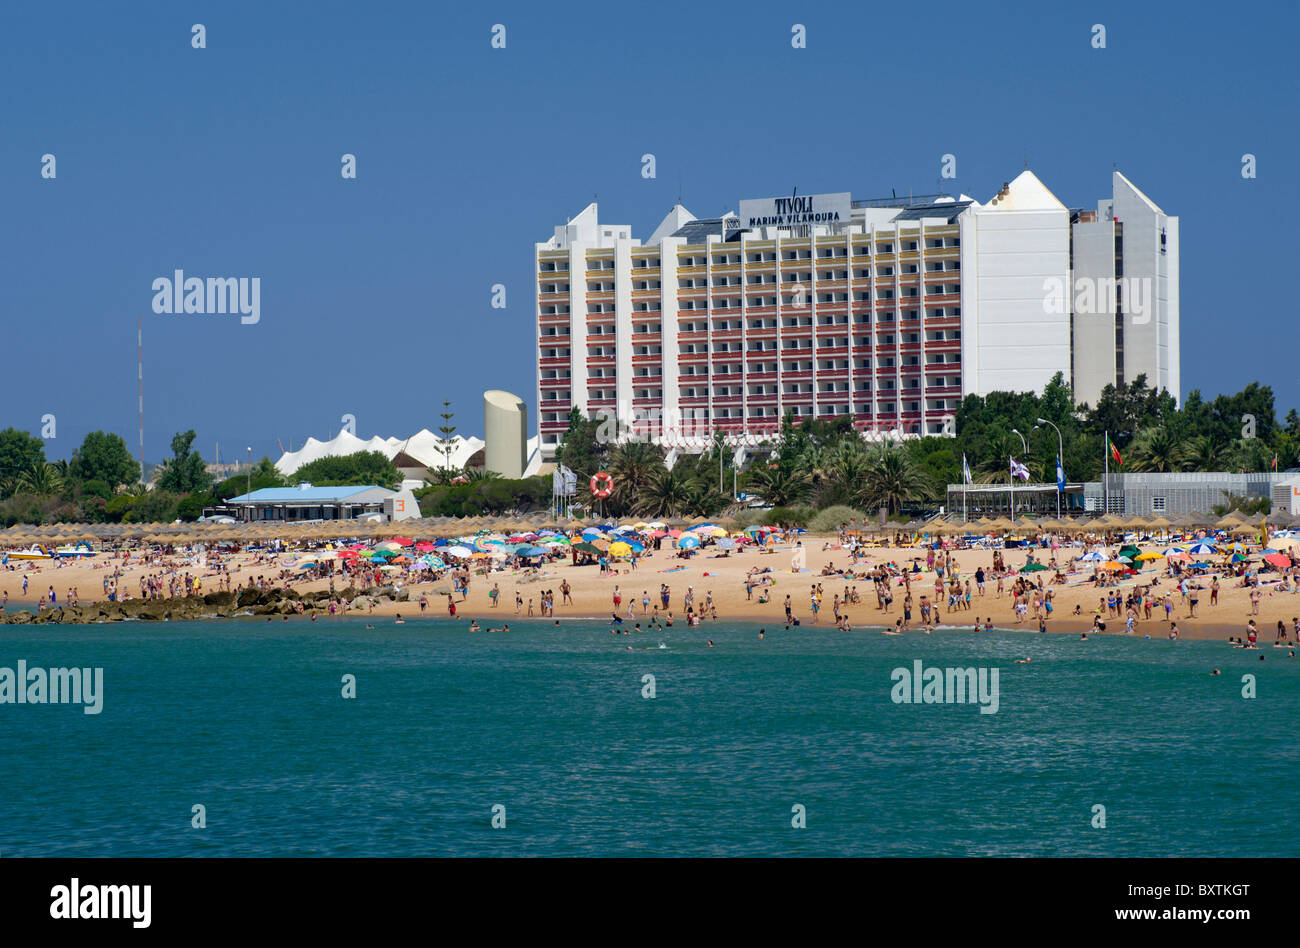 Tivoli Hotels In The Algarve Portugal The Algarve Tivoli Marina Vilamoura Hotel And